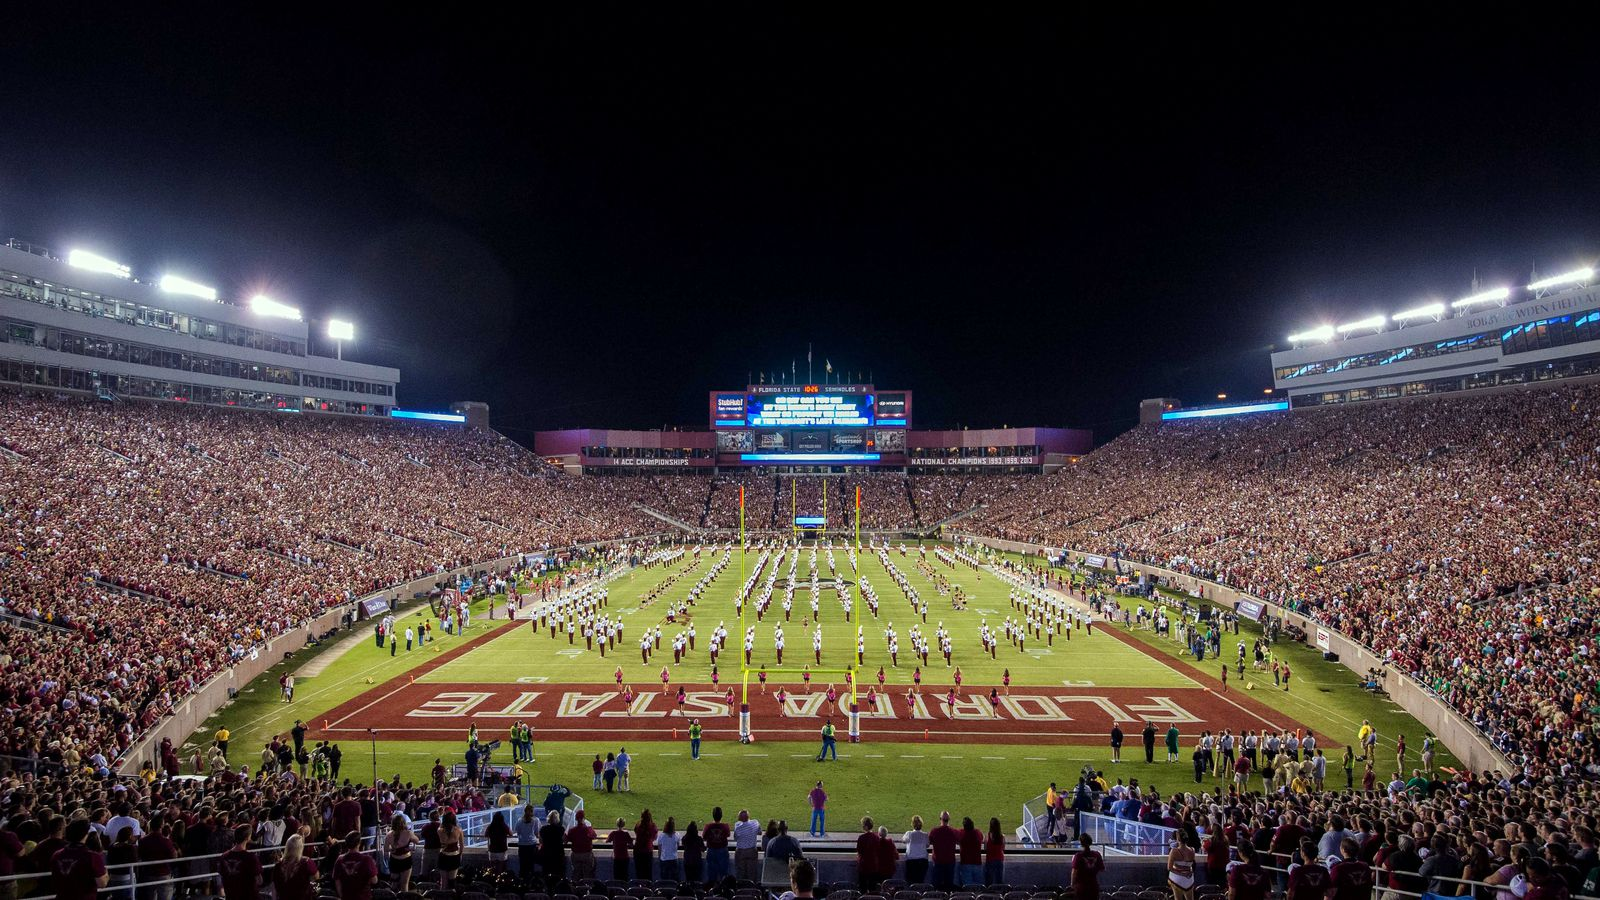 FSU football's recent home-field advantage is unmatched - Tomahawk Nation